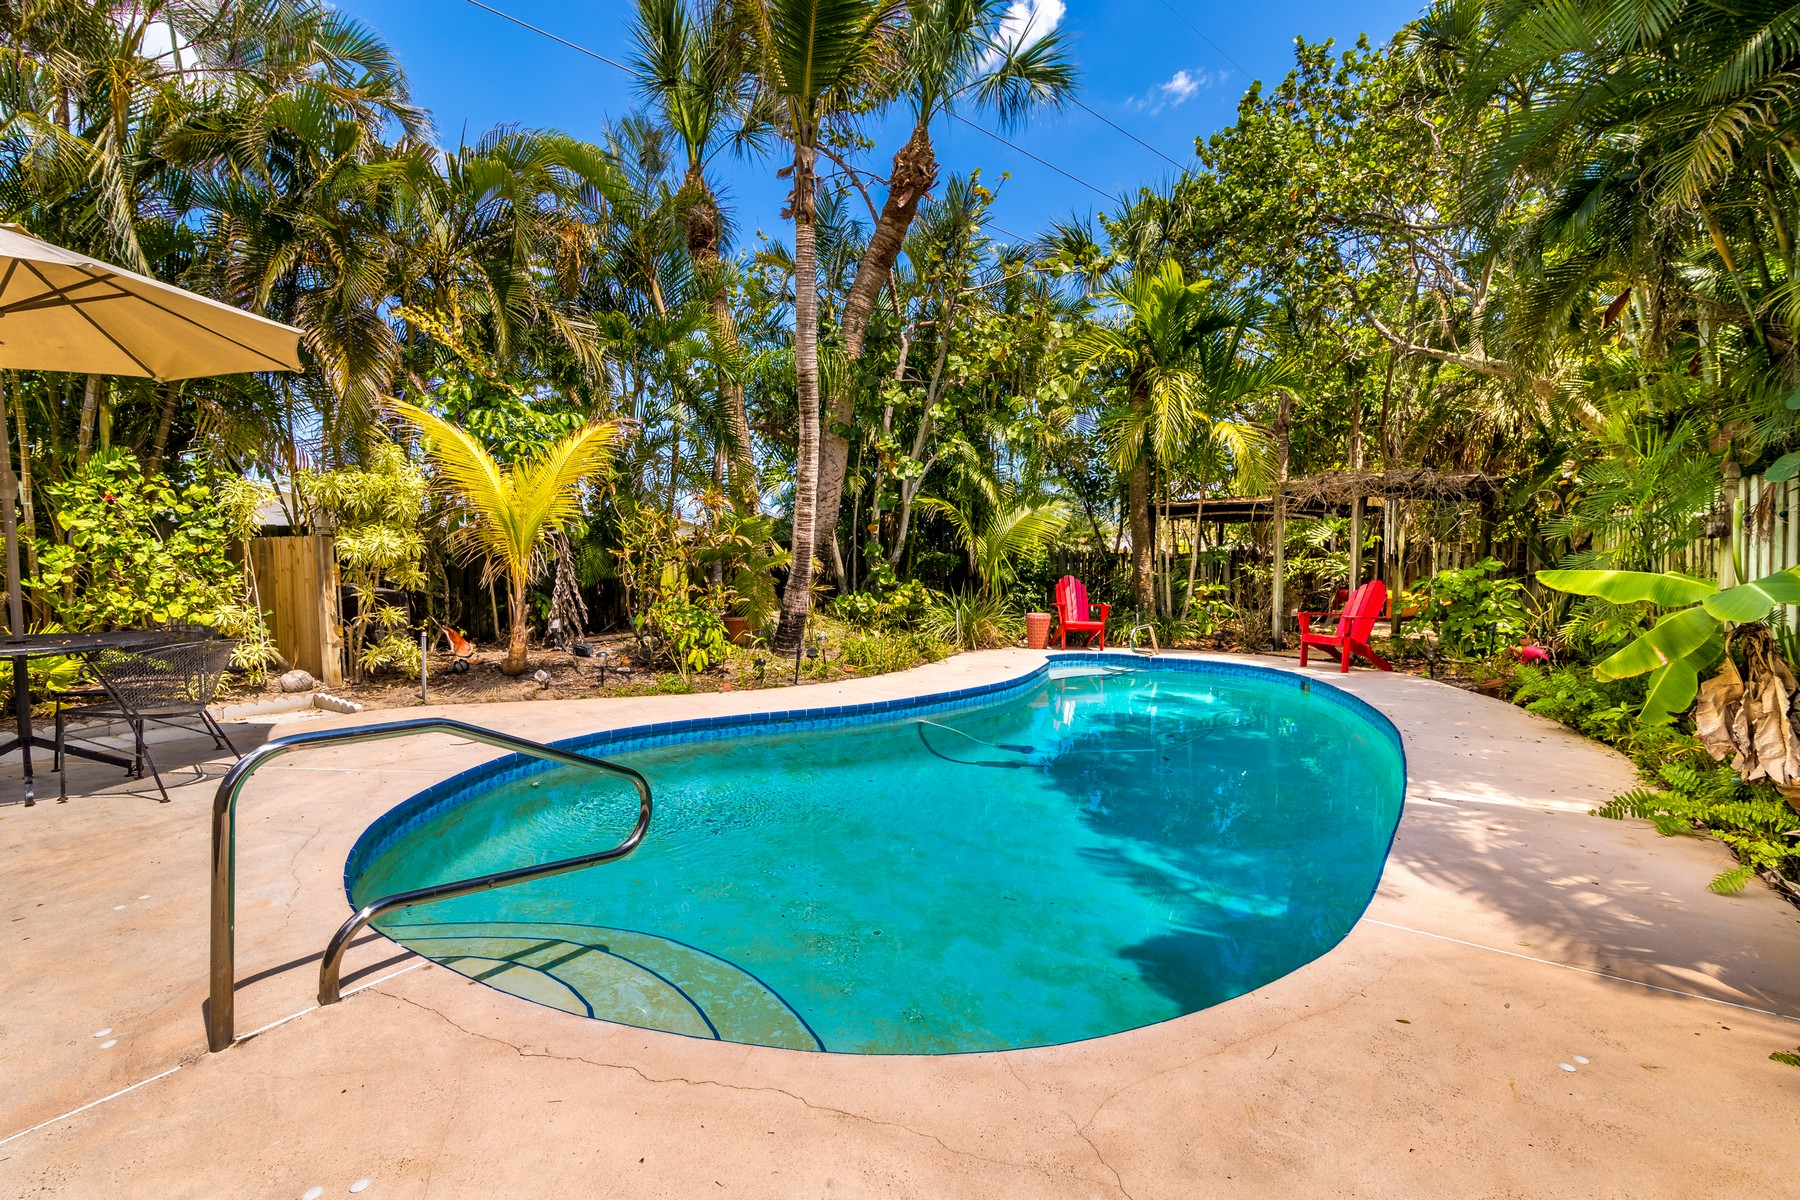 Additional photo for property listing at Charming Tropical Oasis 326 Oakland Ave Indialantic, Florida 32903 United States